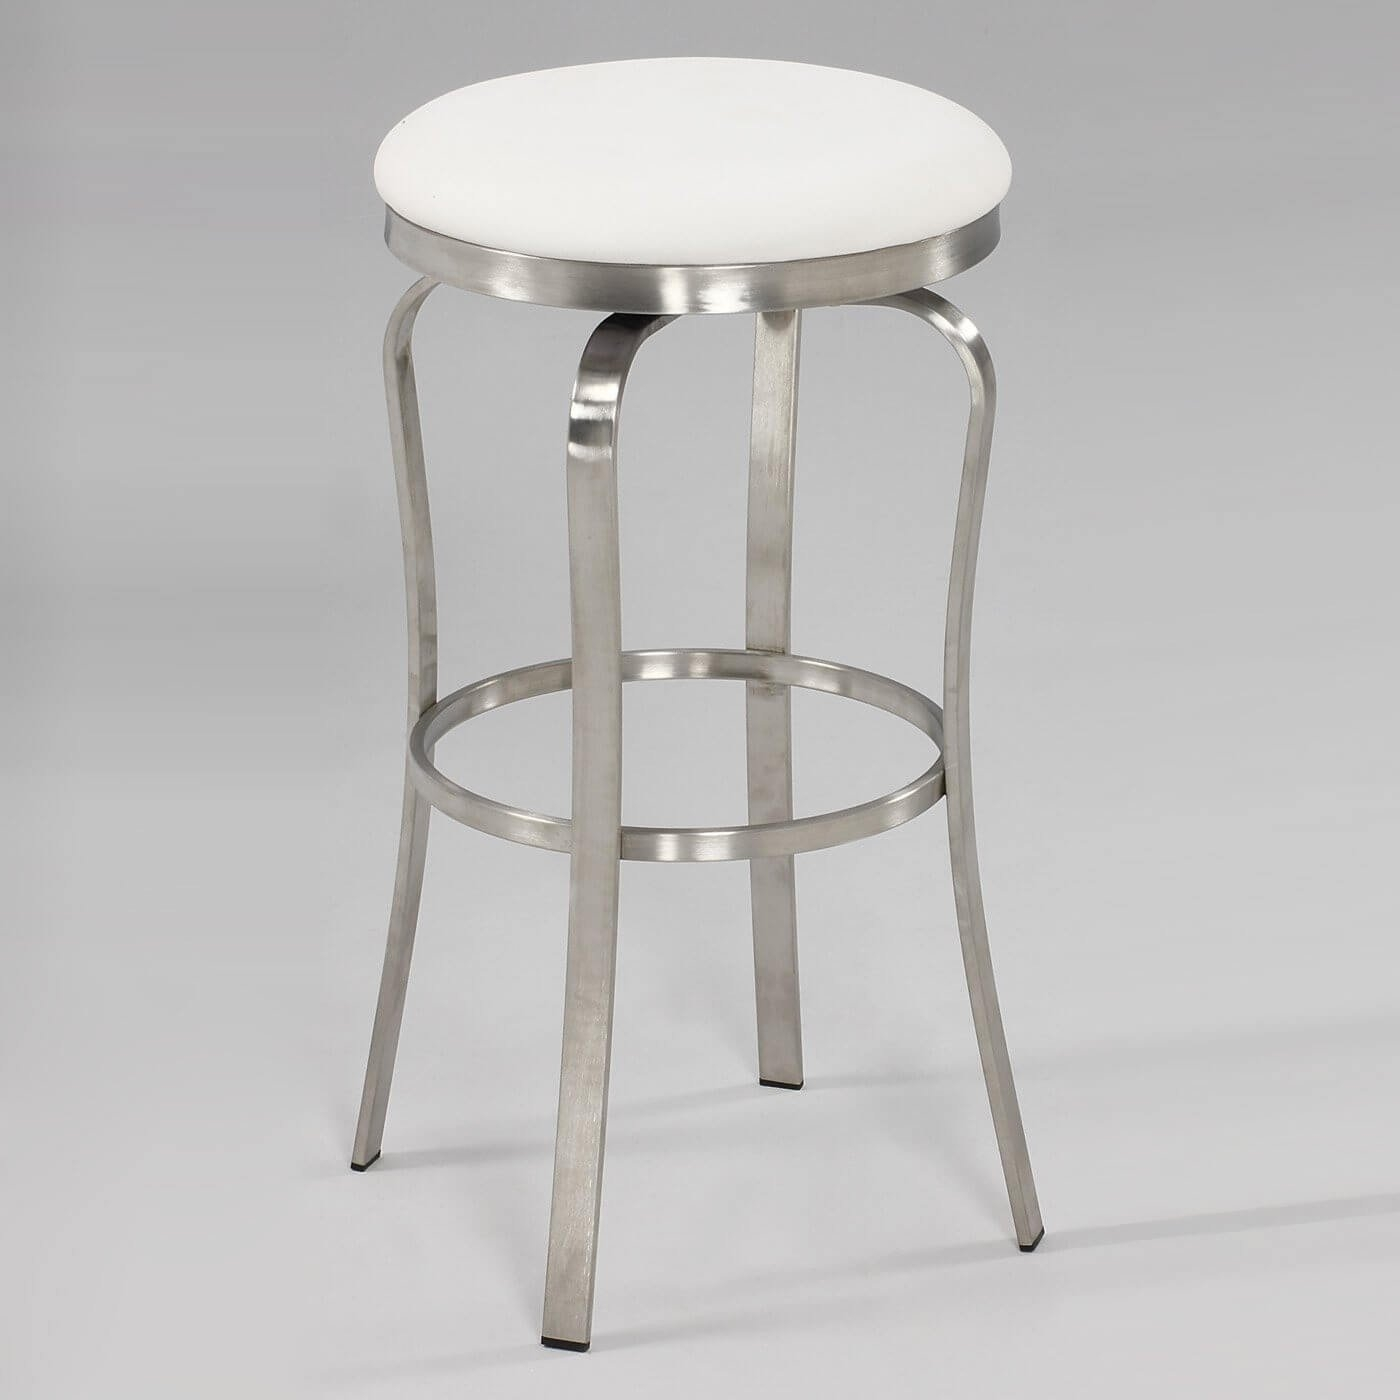 Stainless Steel Barstools   Ideas on Foter